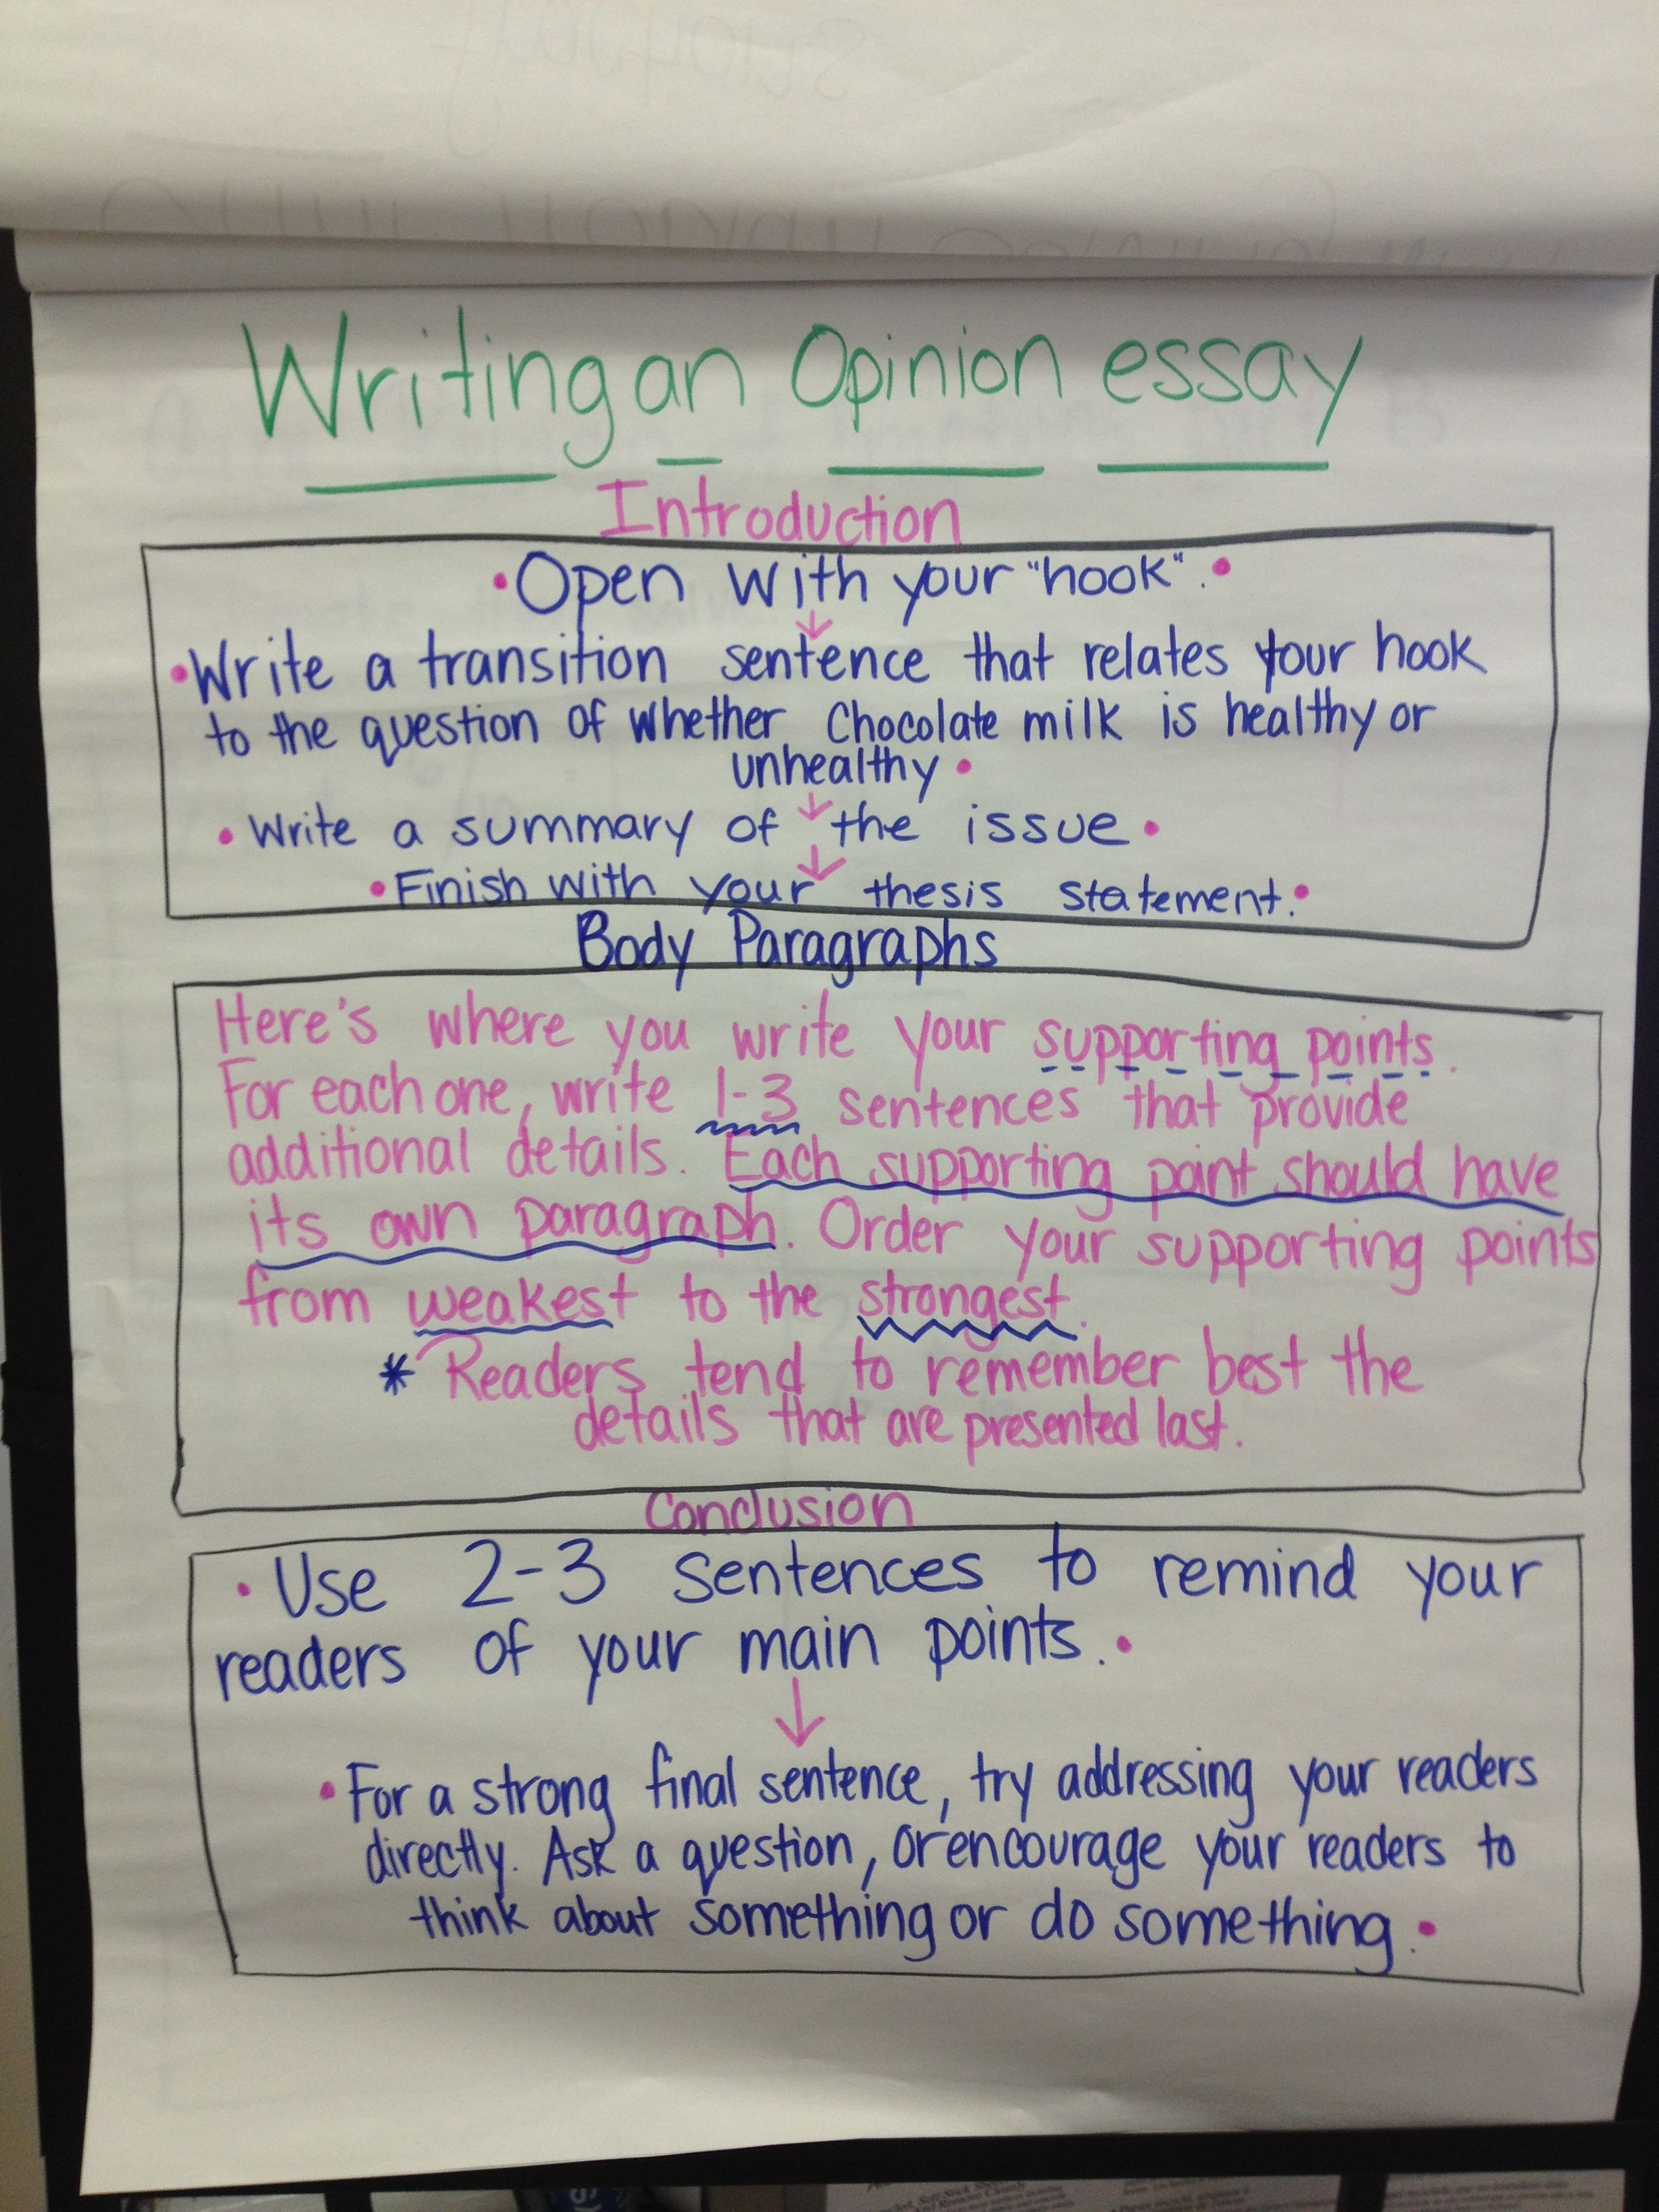 steps for writing an opinion essay th grade little miss  steps for writing an opinion essay 5th grade